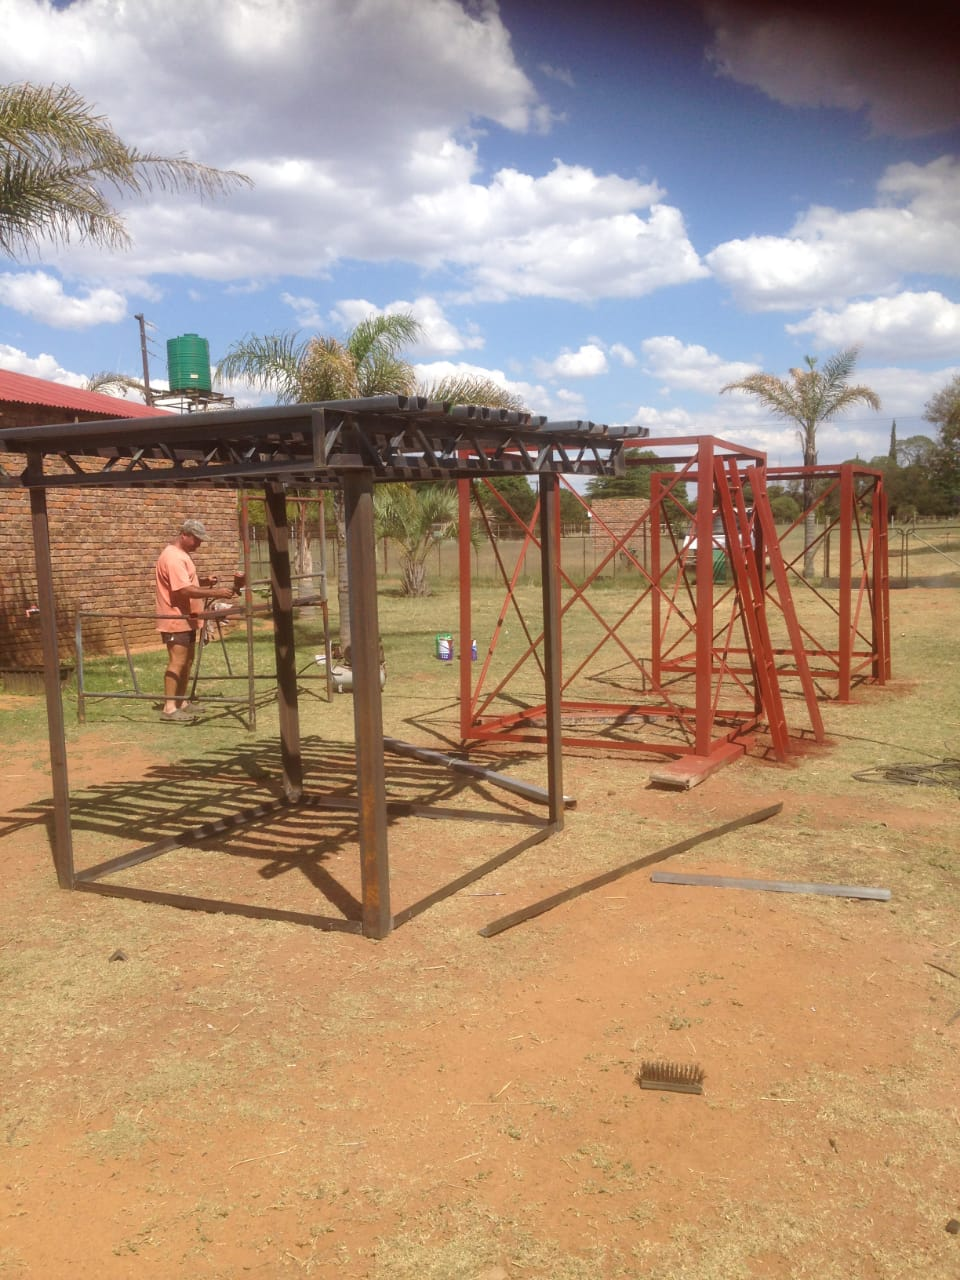 Watertank stands